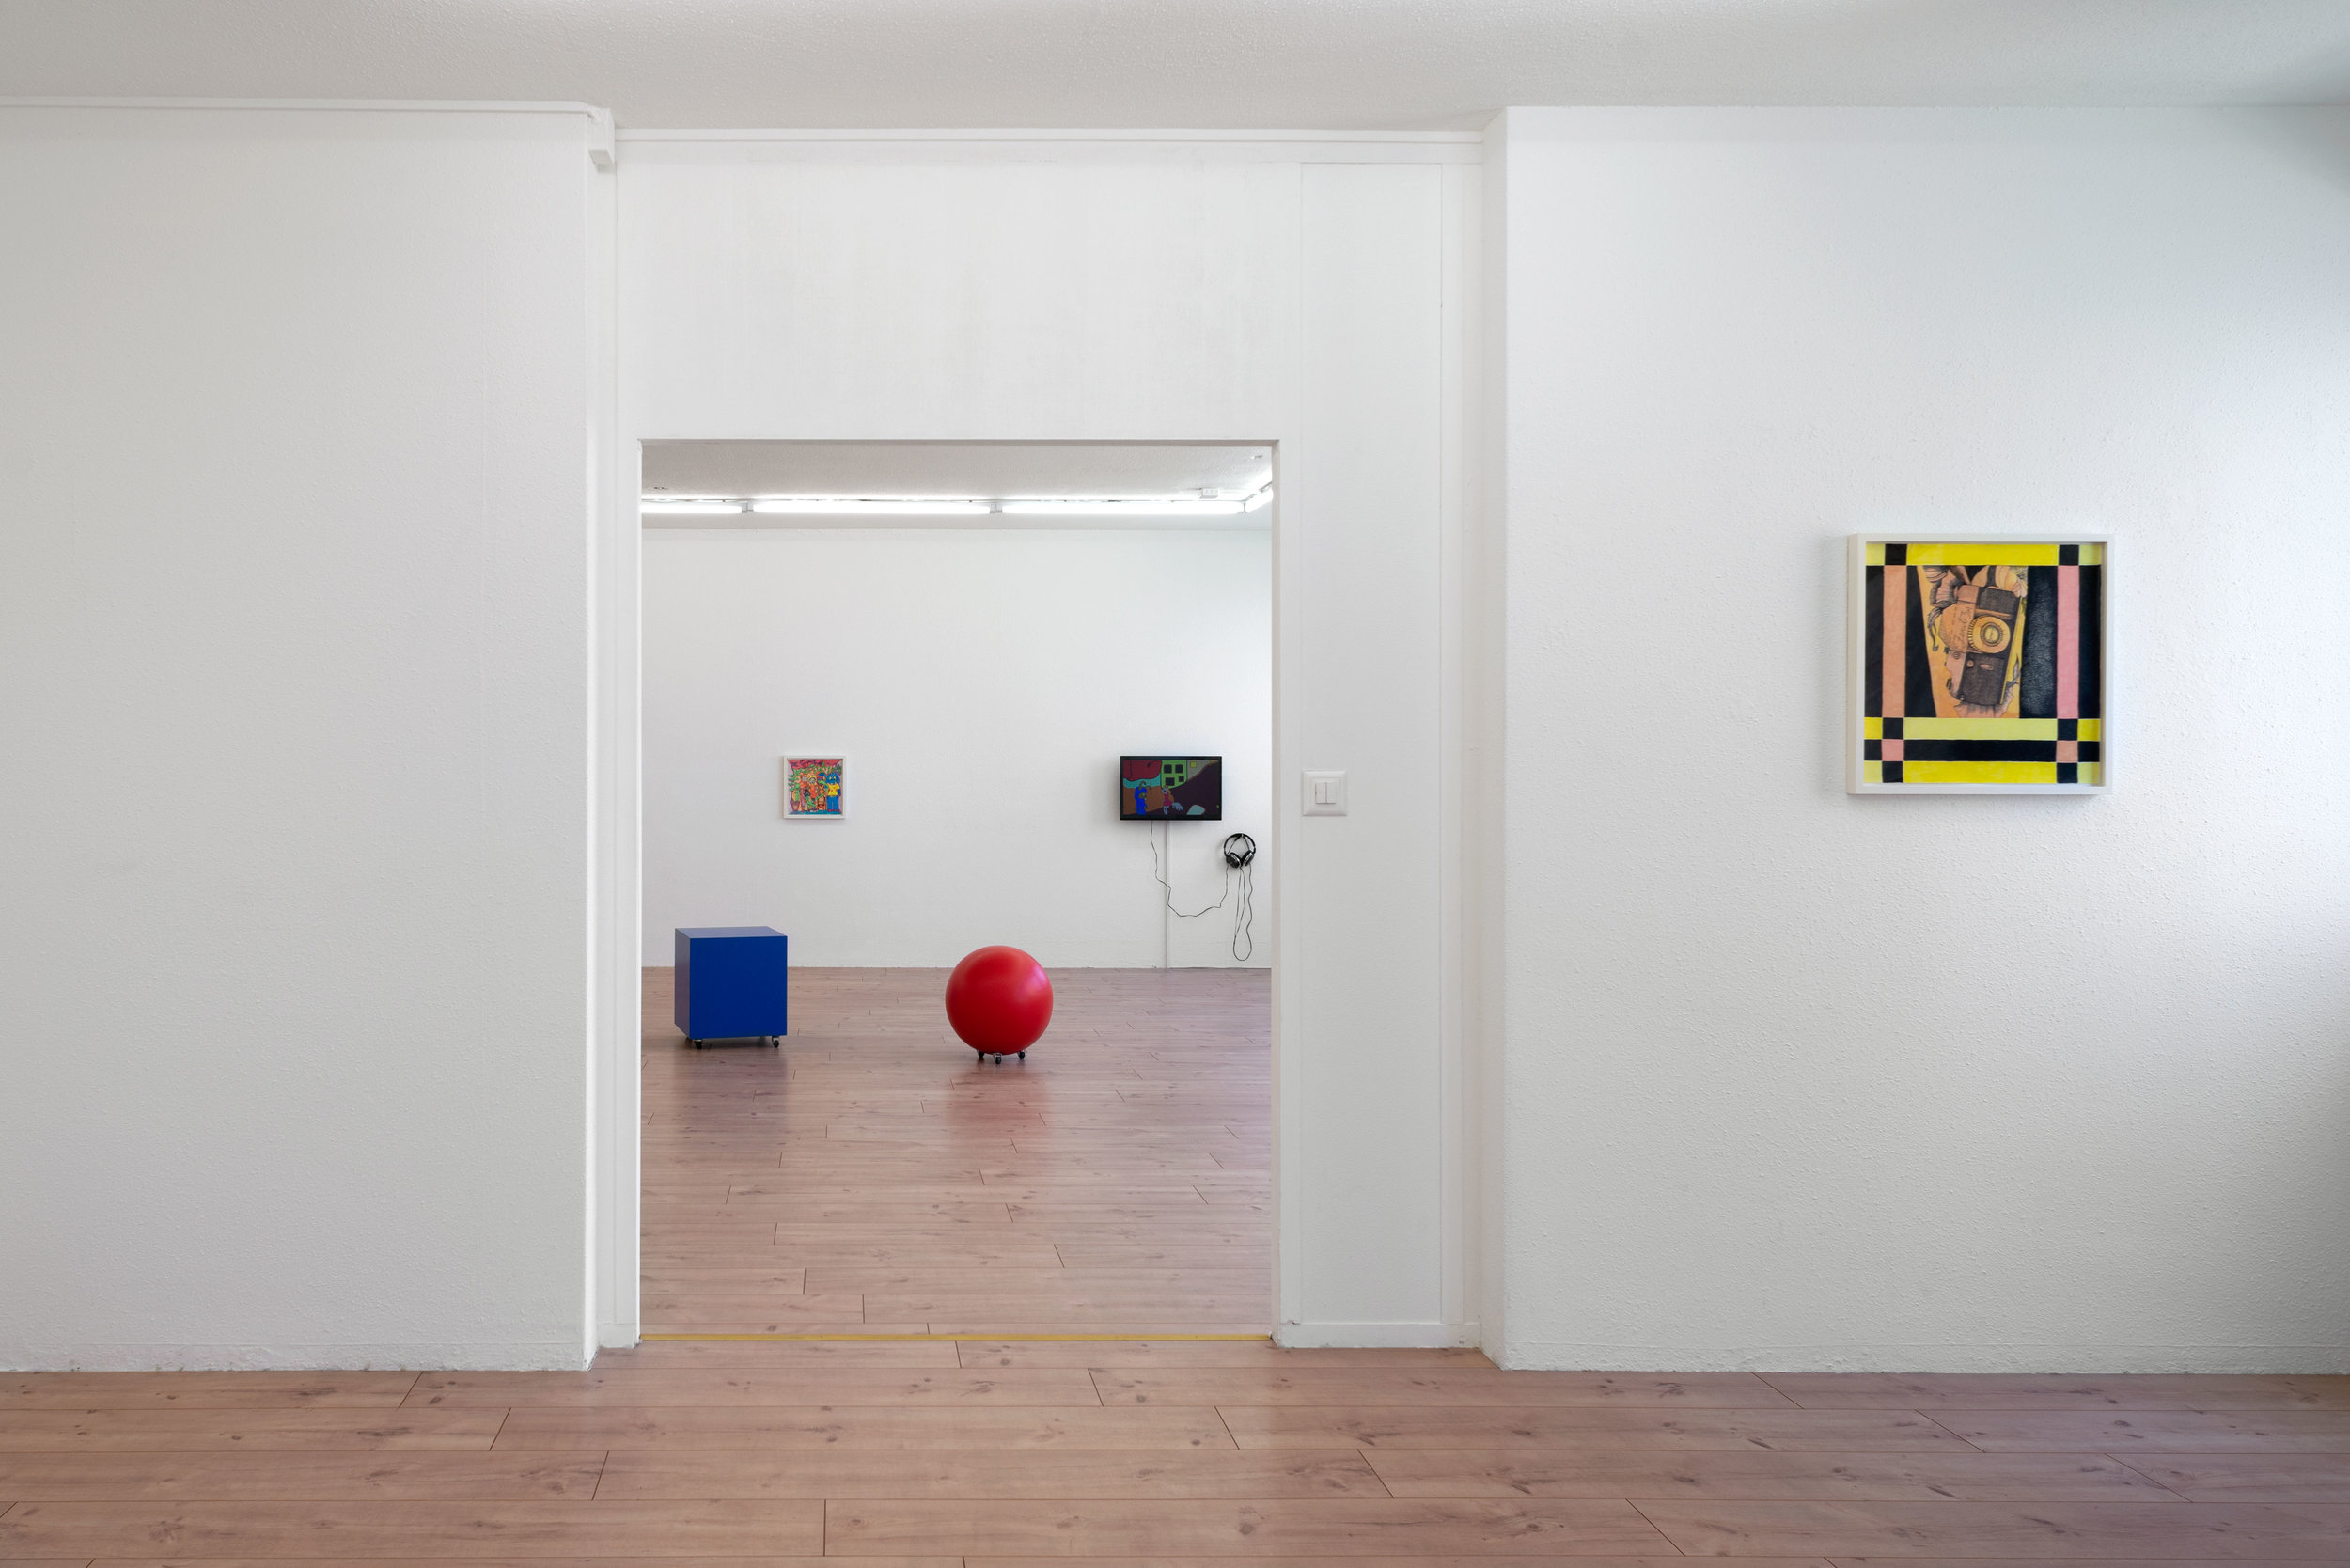 Installation View - Size Matters